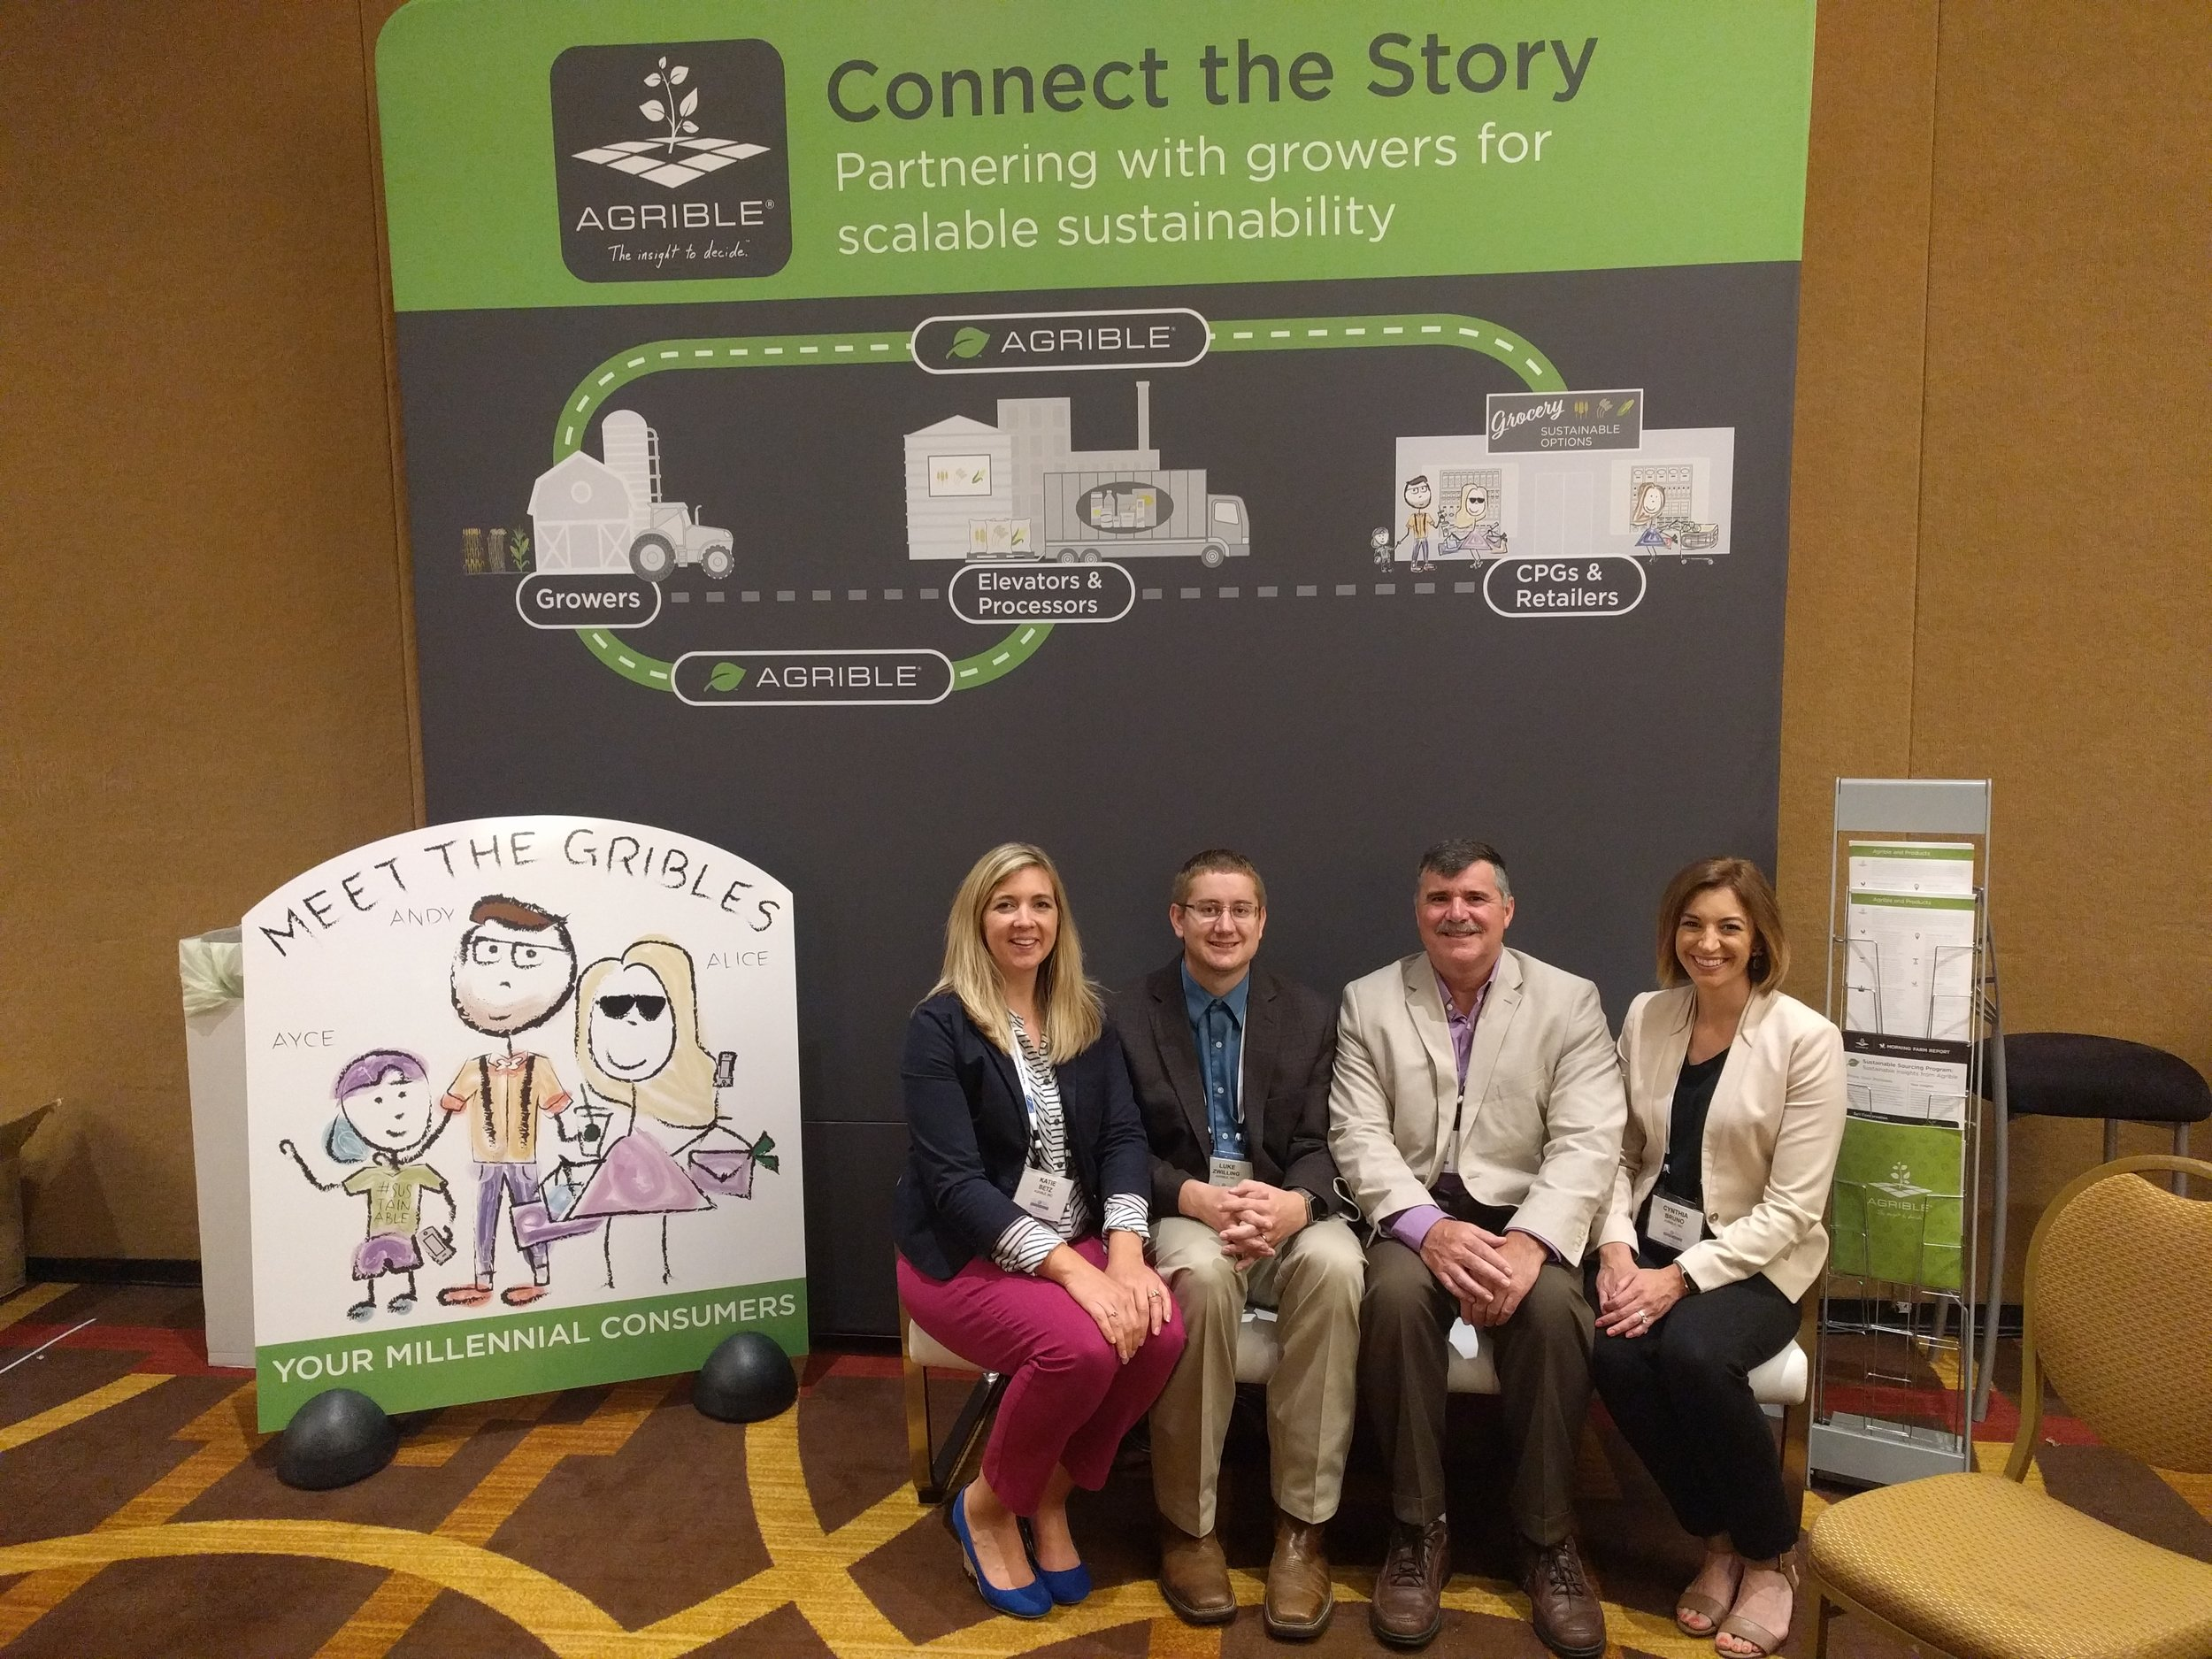 Pictured from left to right: Agrible team members: Katie Betz, Luke Zwilling, Jeff Peters, Cynthia Bruno.